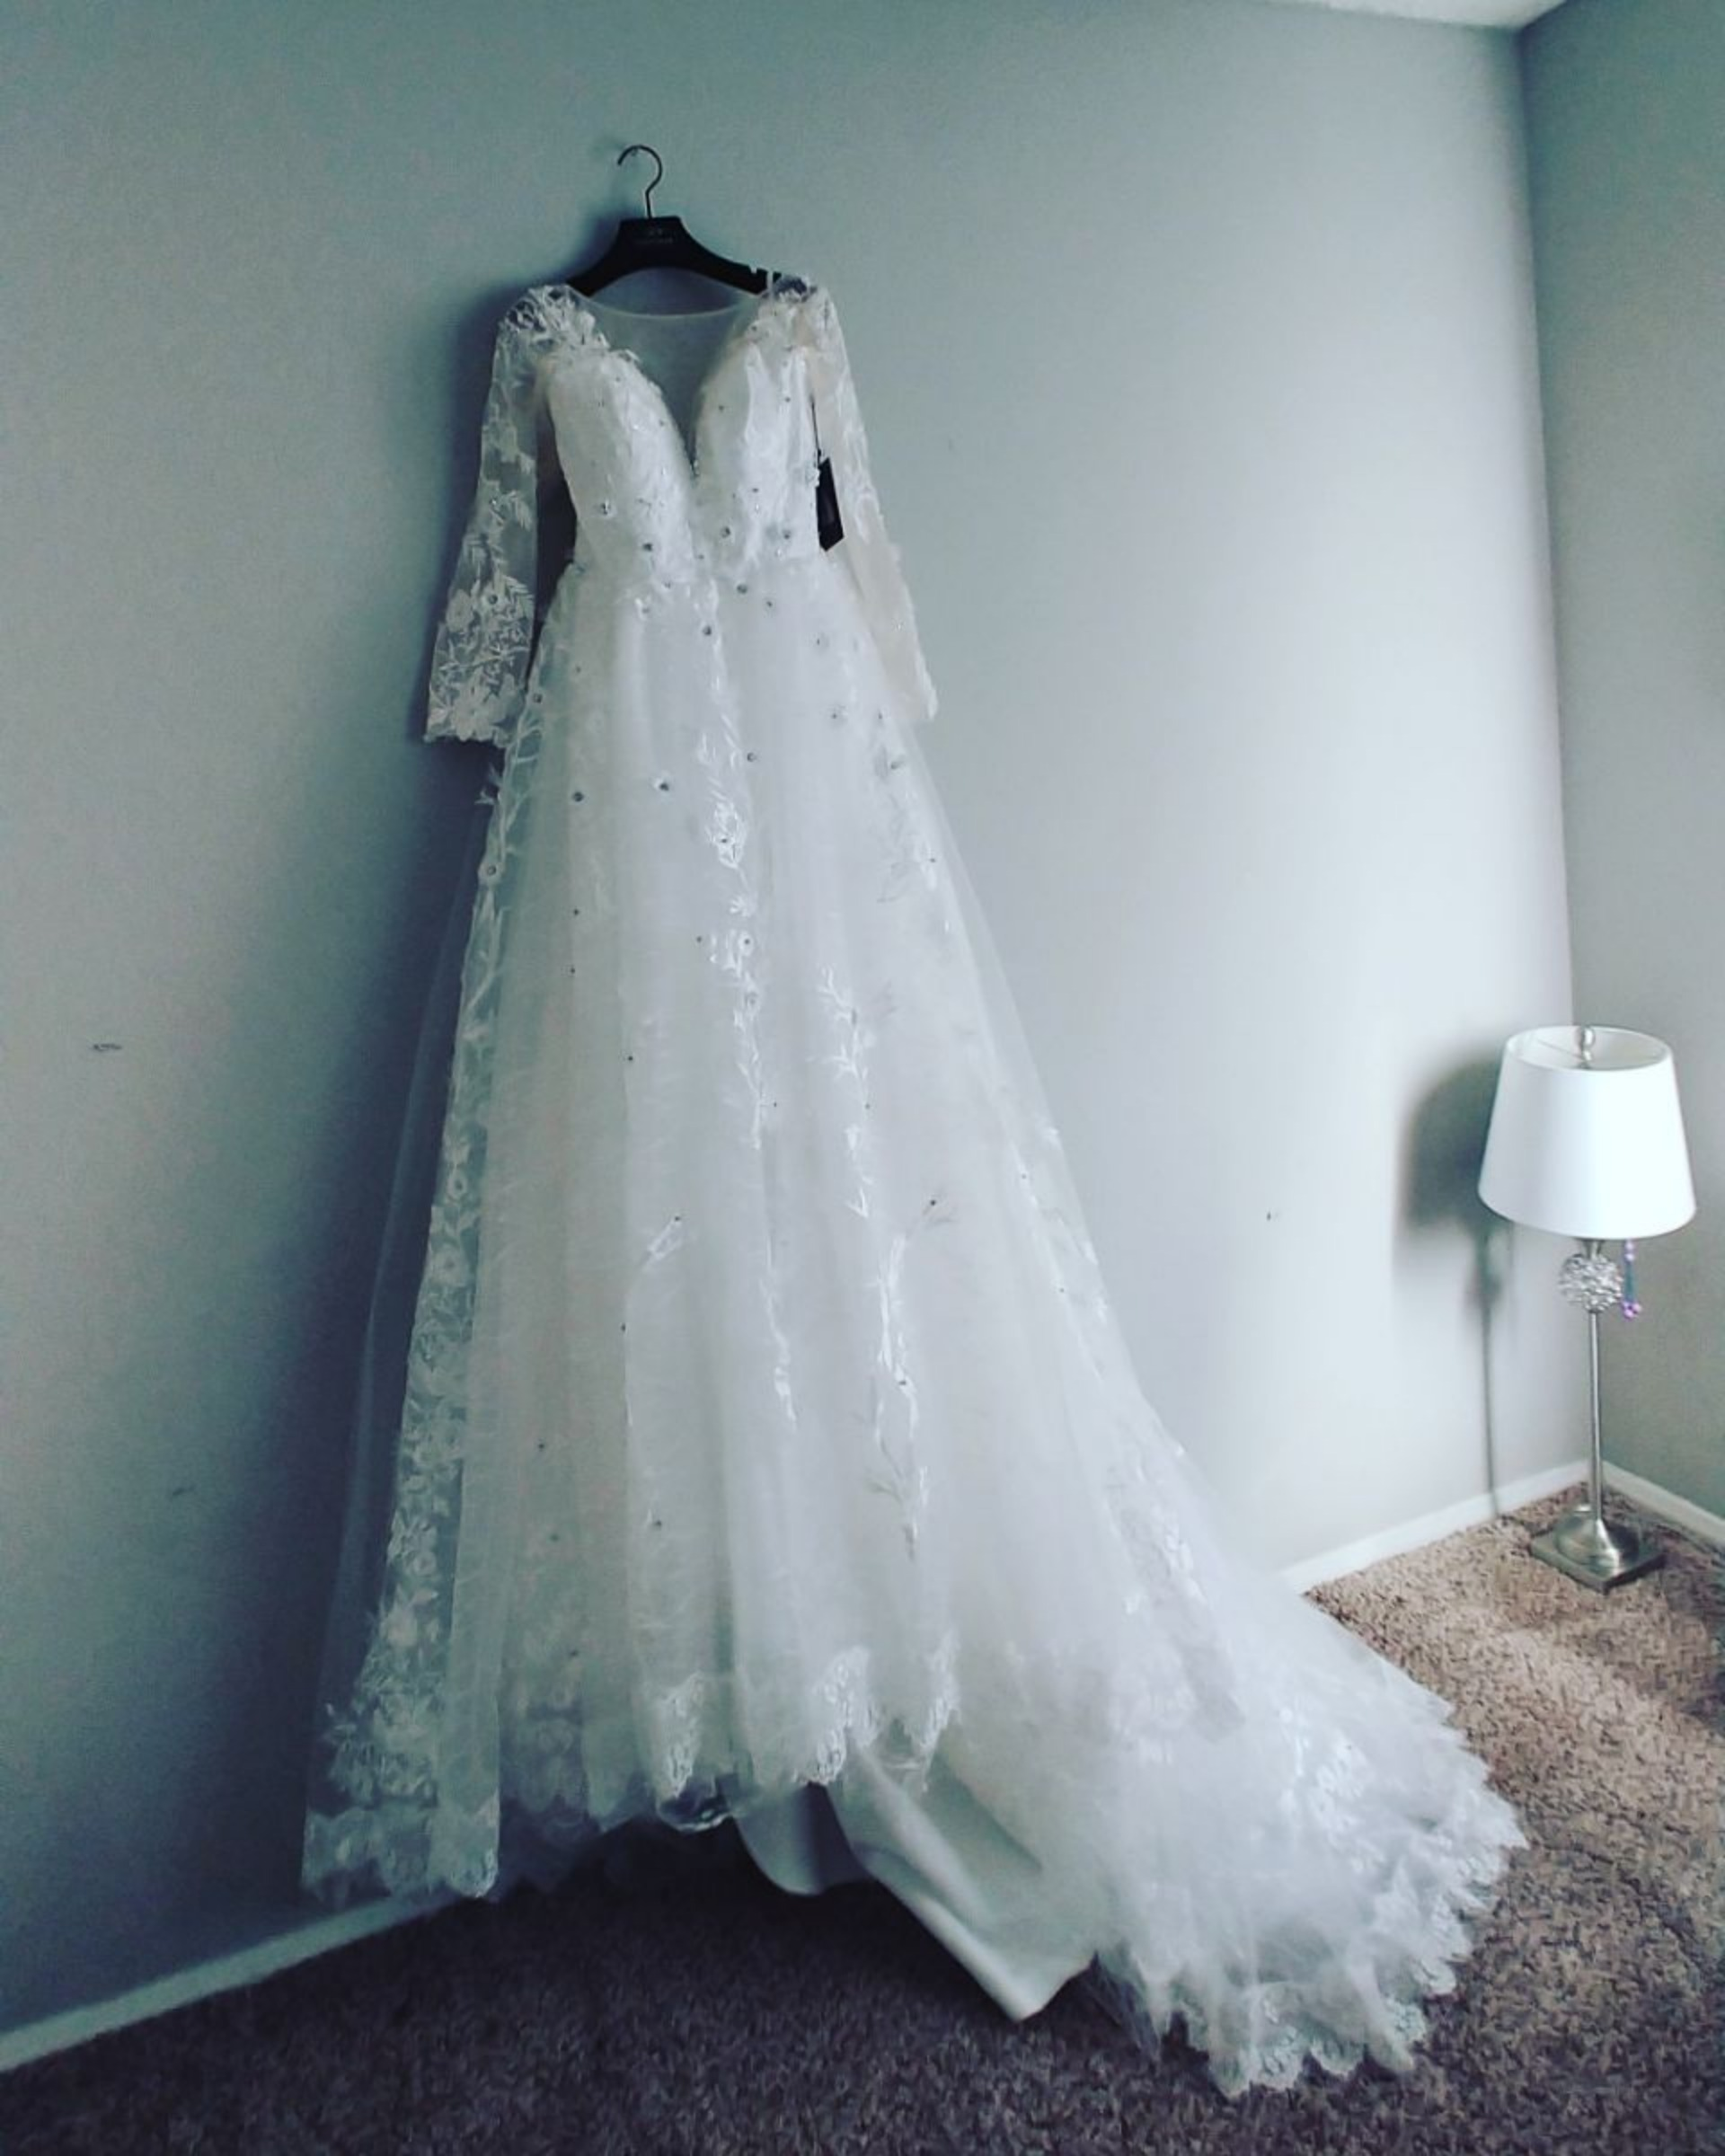 It's dress really beautiful. And like in pictures. Come with hangers and bag for dress. Really Thank you.....